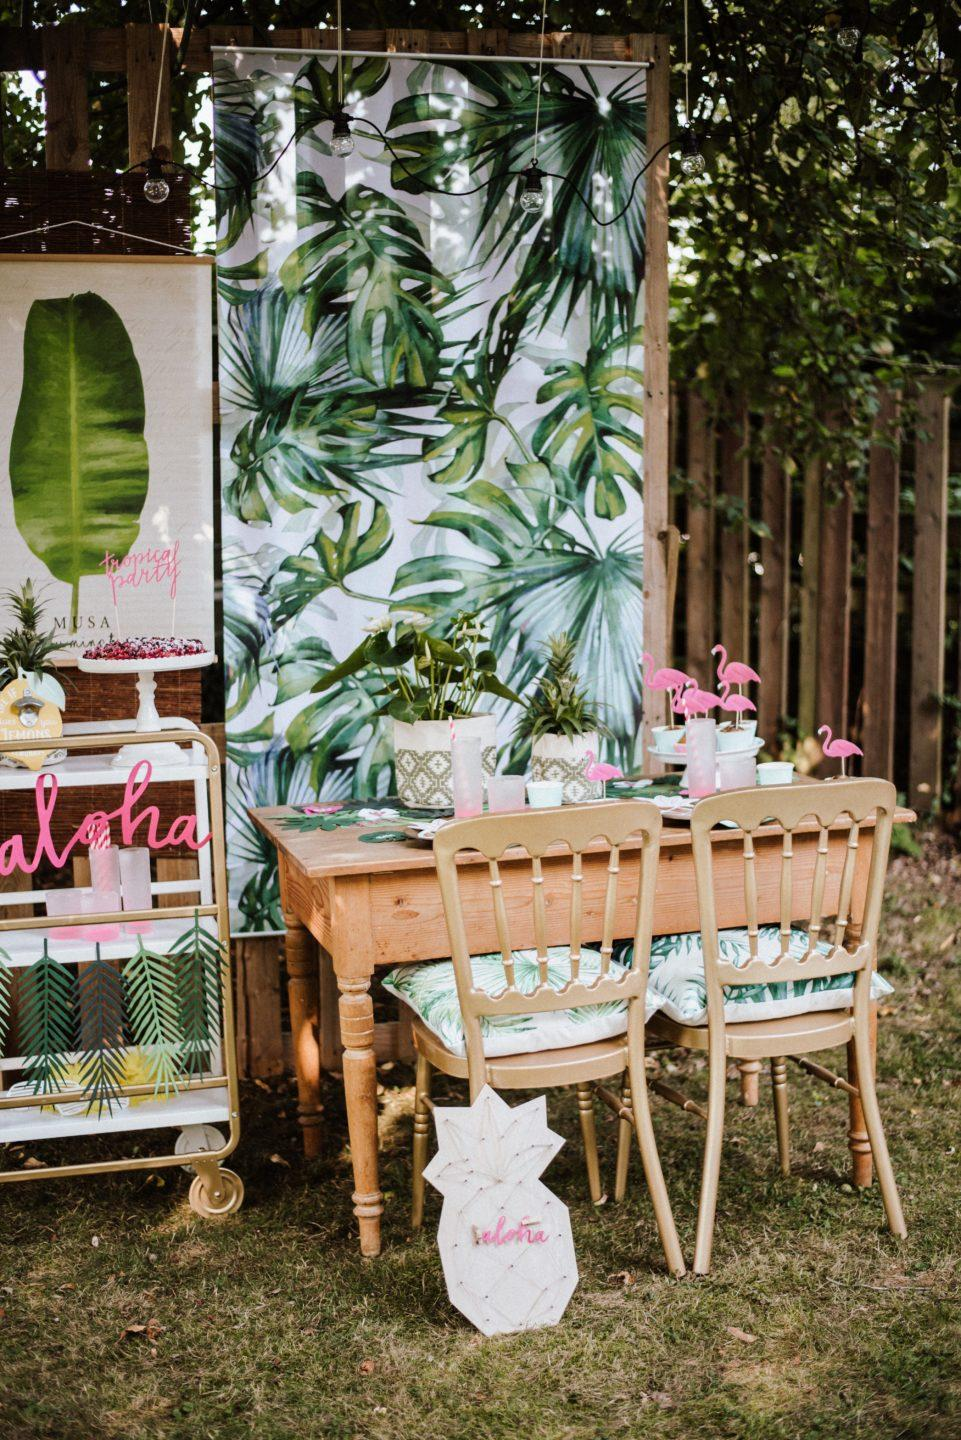 Sommerparty Deko Mottoparty Karibik Hawaii Diy Ideen Stephanies